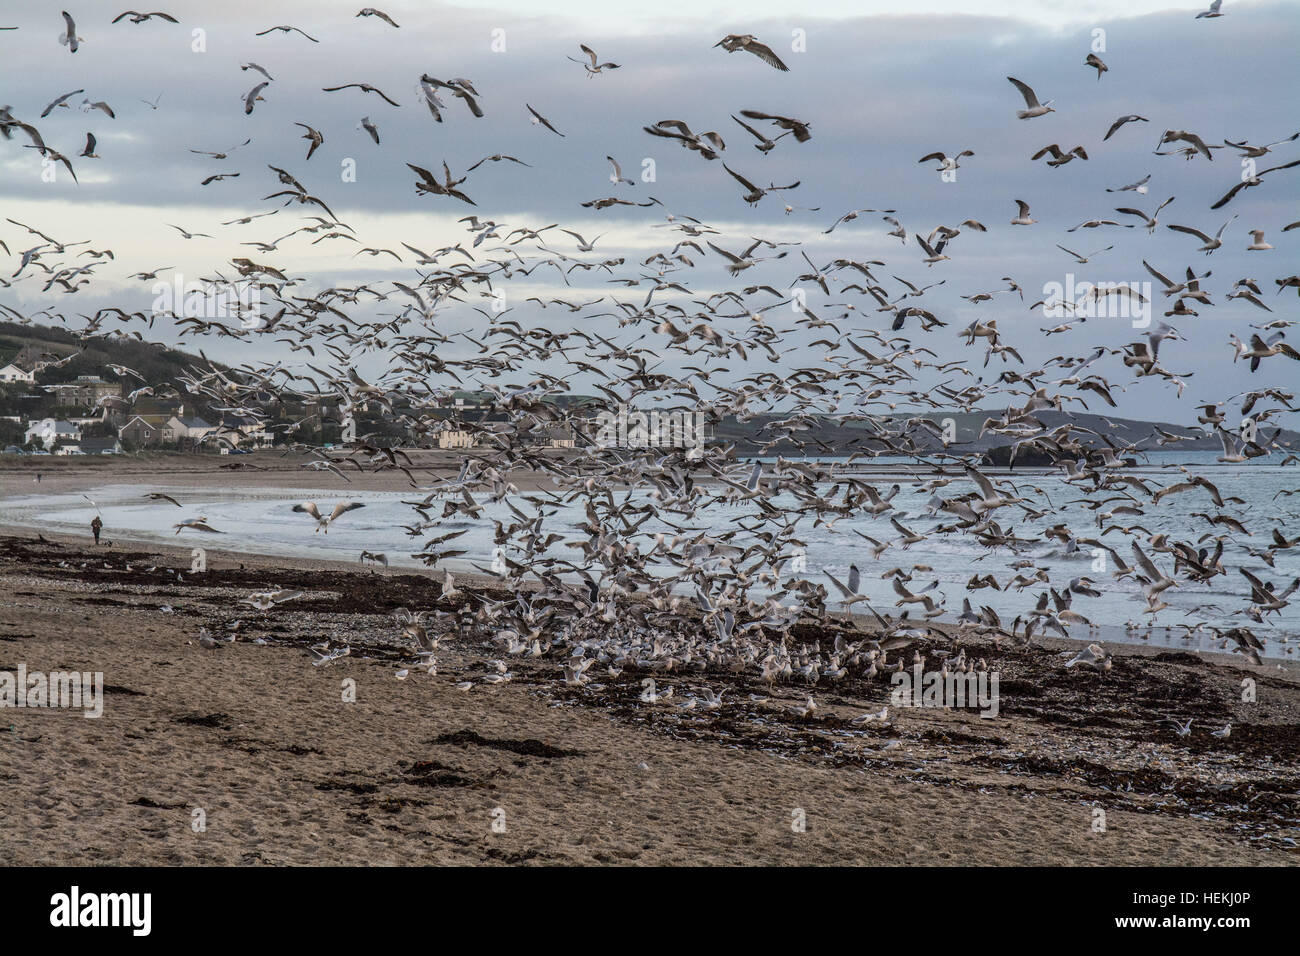 Marazion, Cornwall, UK. 22nd December 2016. The most likely reason for the tens of thousands of dead fish that were - Stock Image